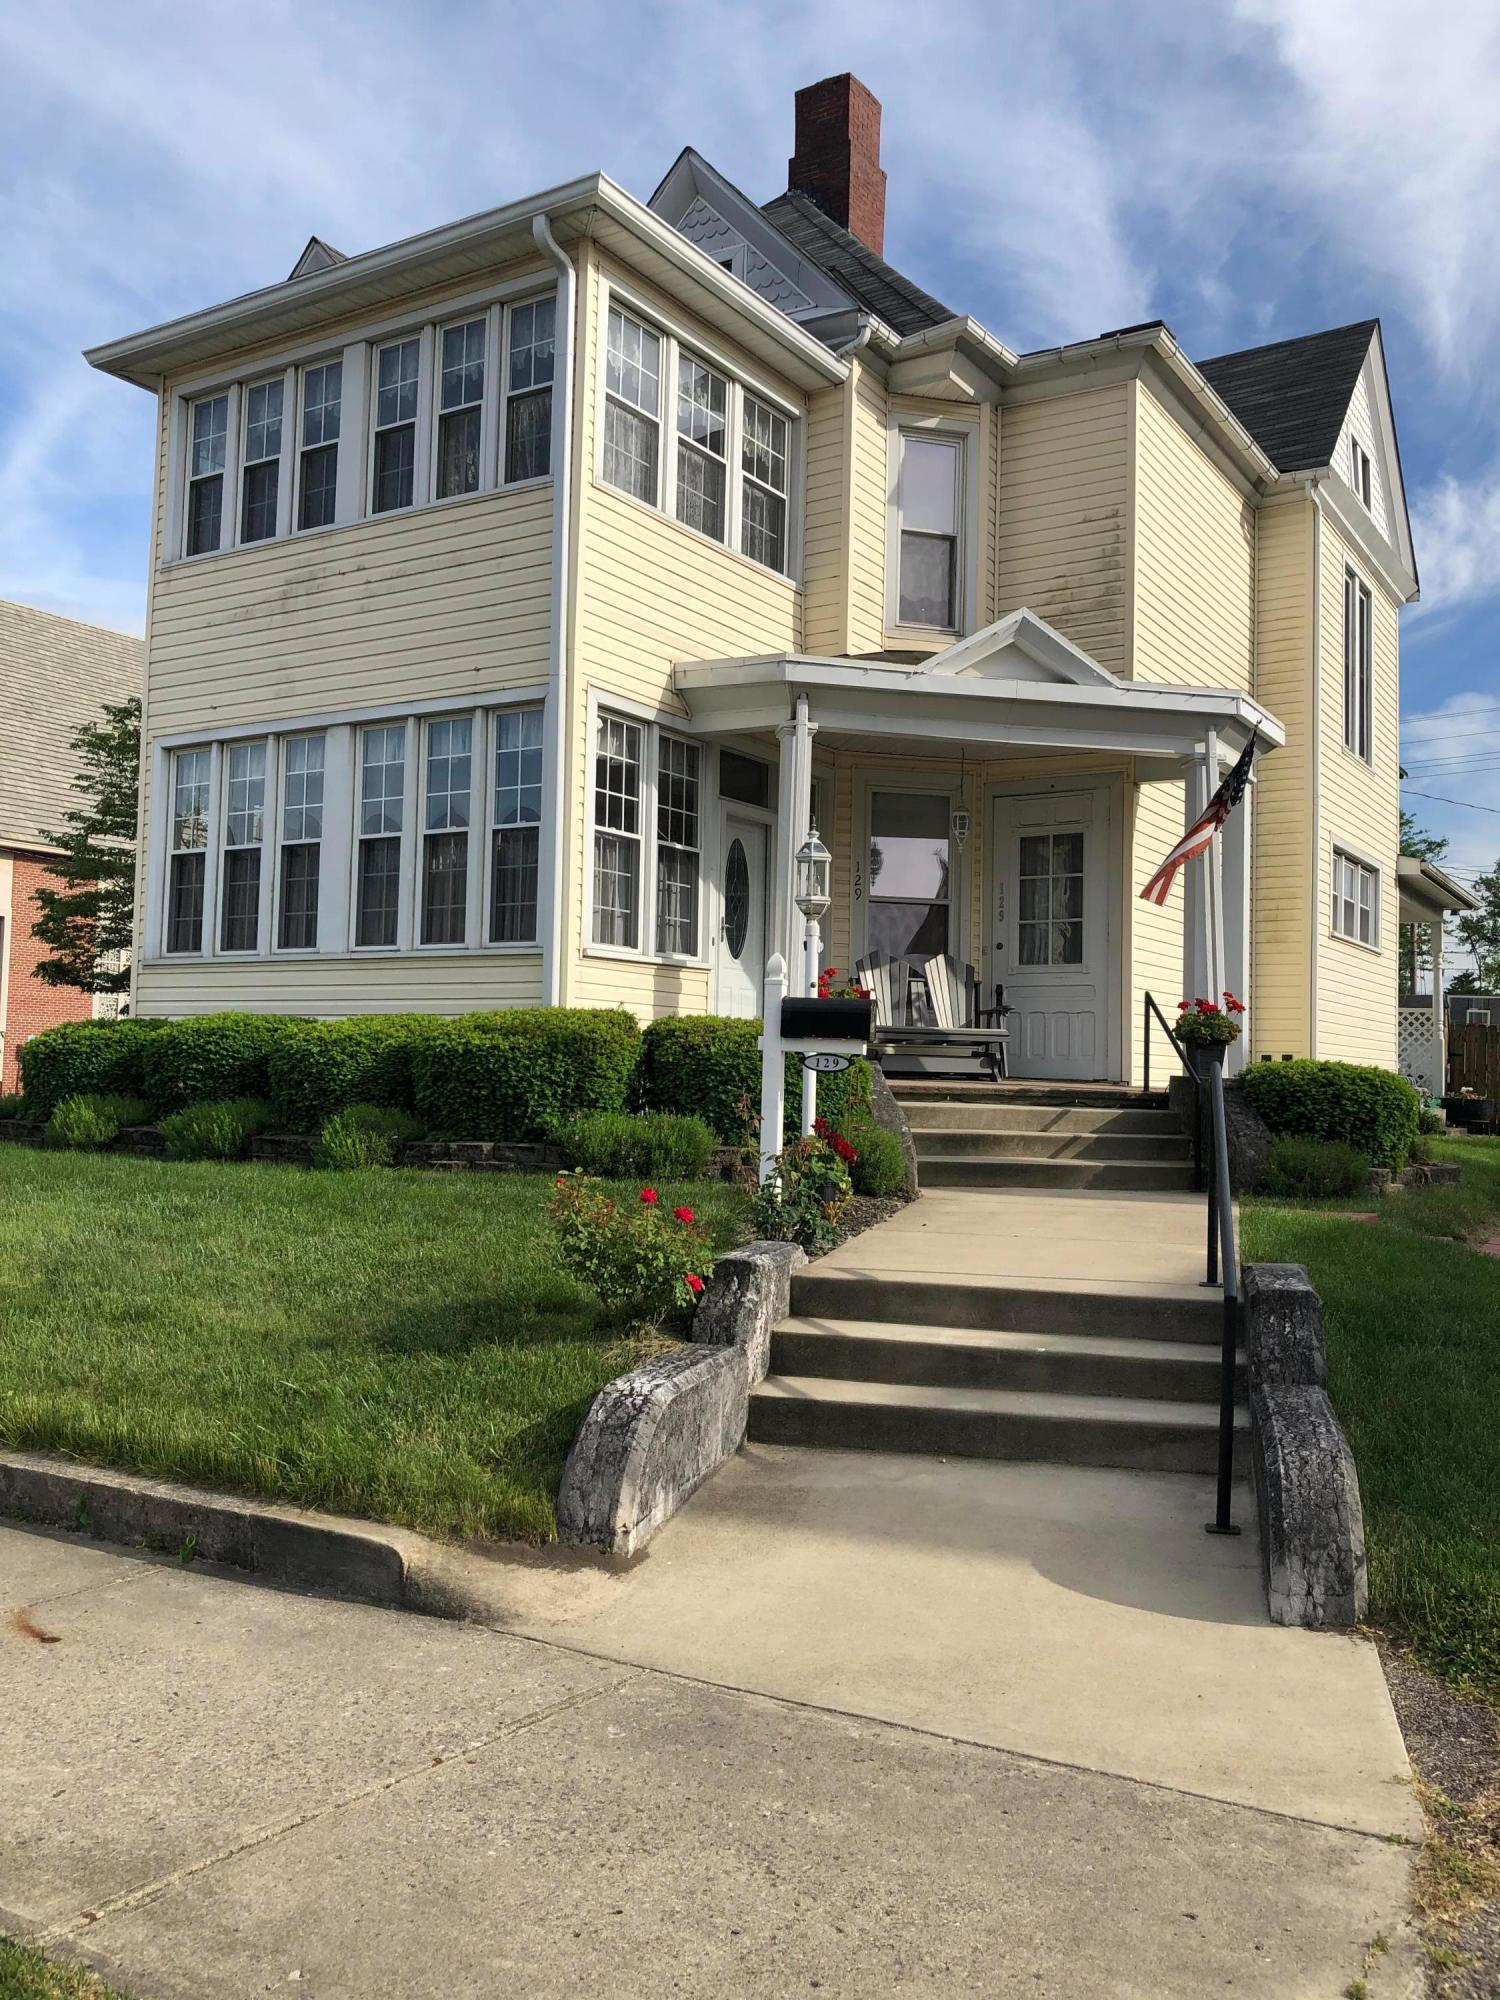 Property for sale at 129 E Mound Street, Circleville,  Ohio 43113